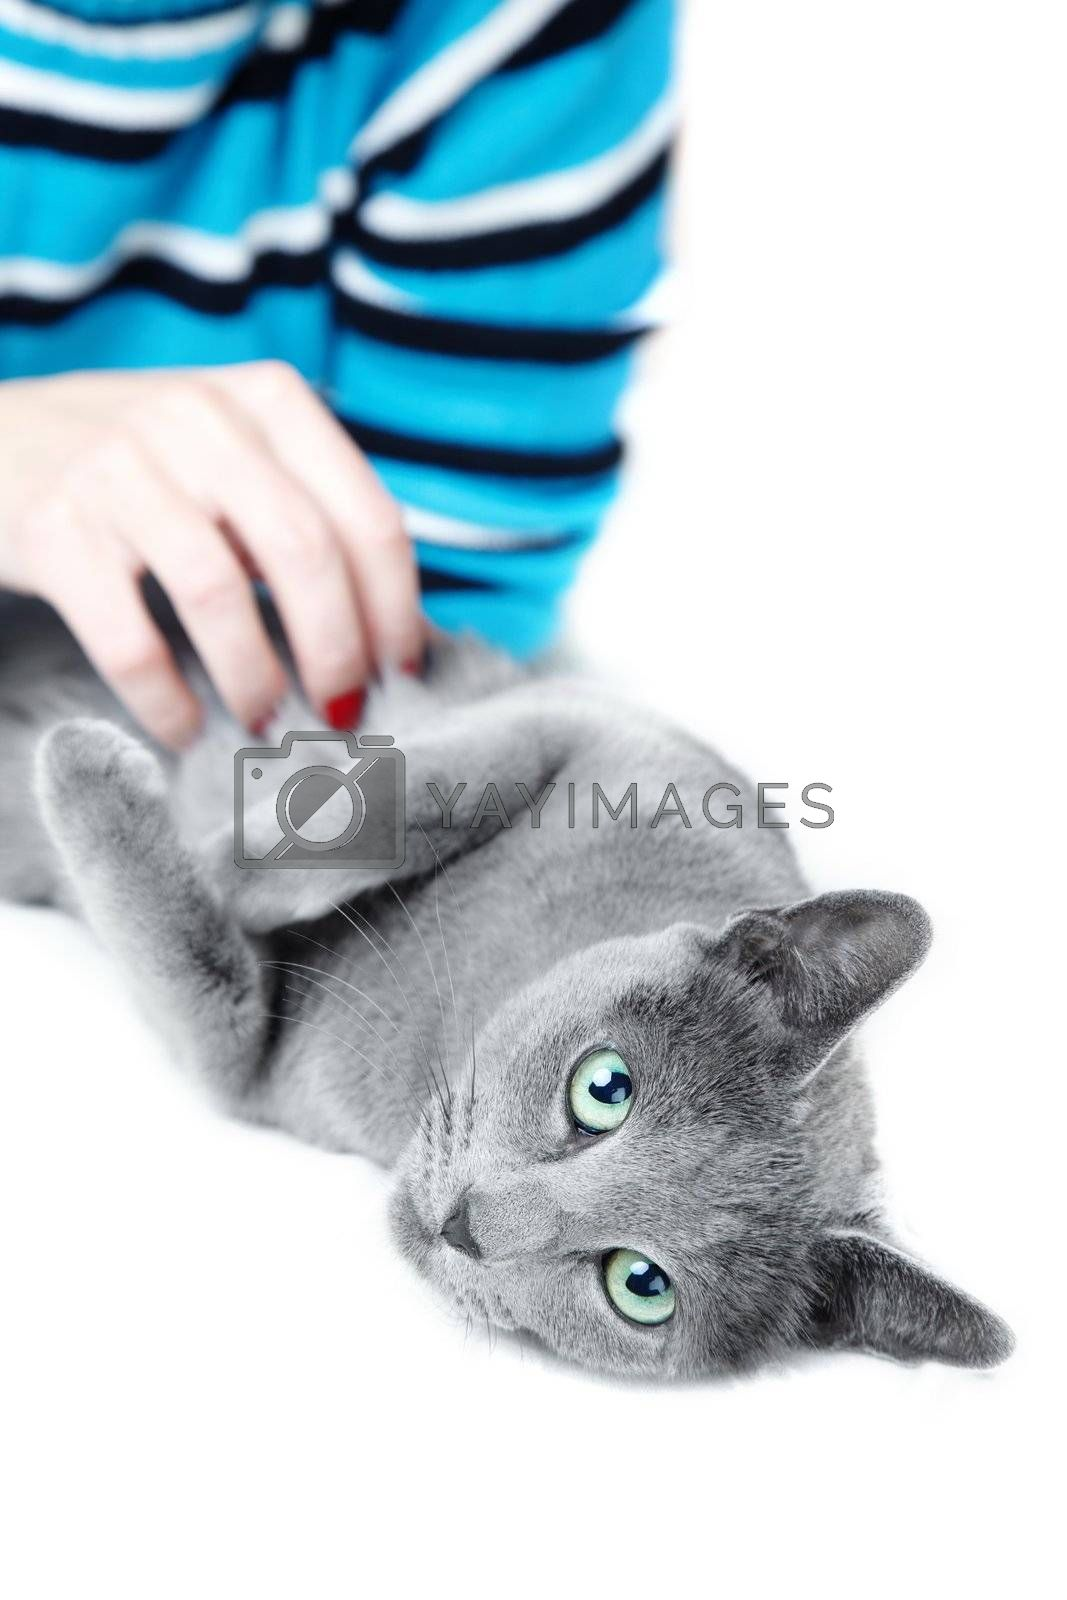 Pampering cat by Novic